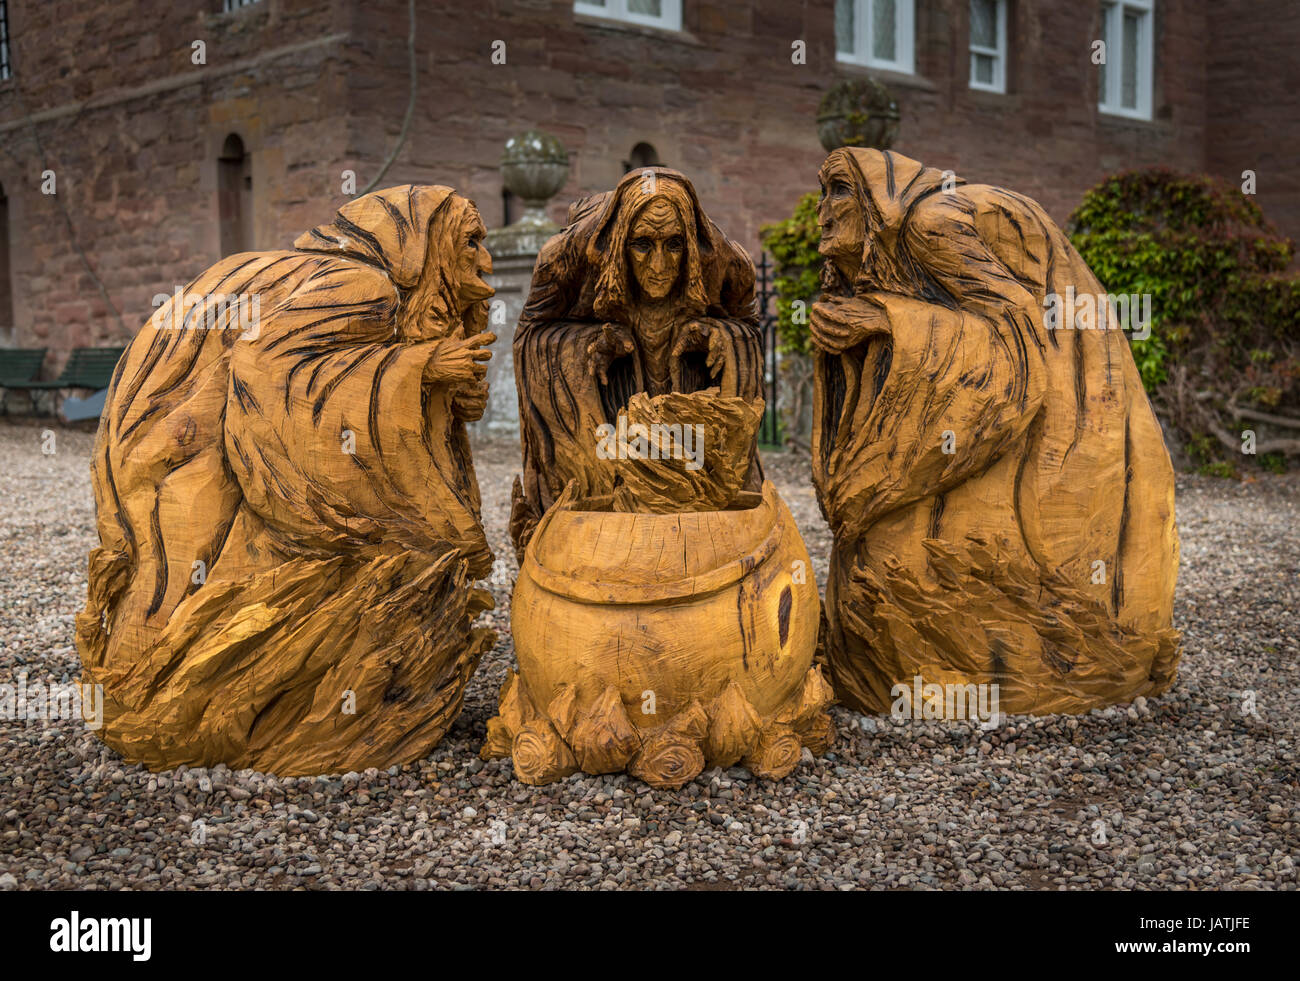 Carving of the three witches of Shakespeare's Macbeth at Glamis Castle - Stock Image